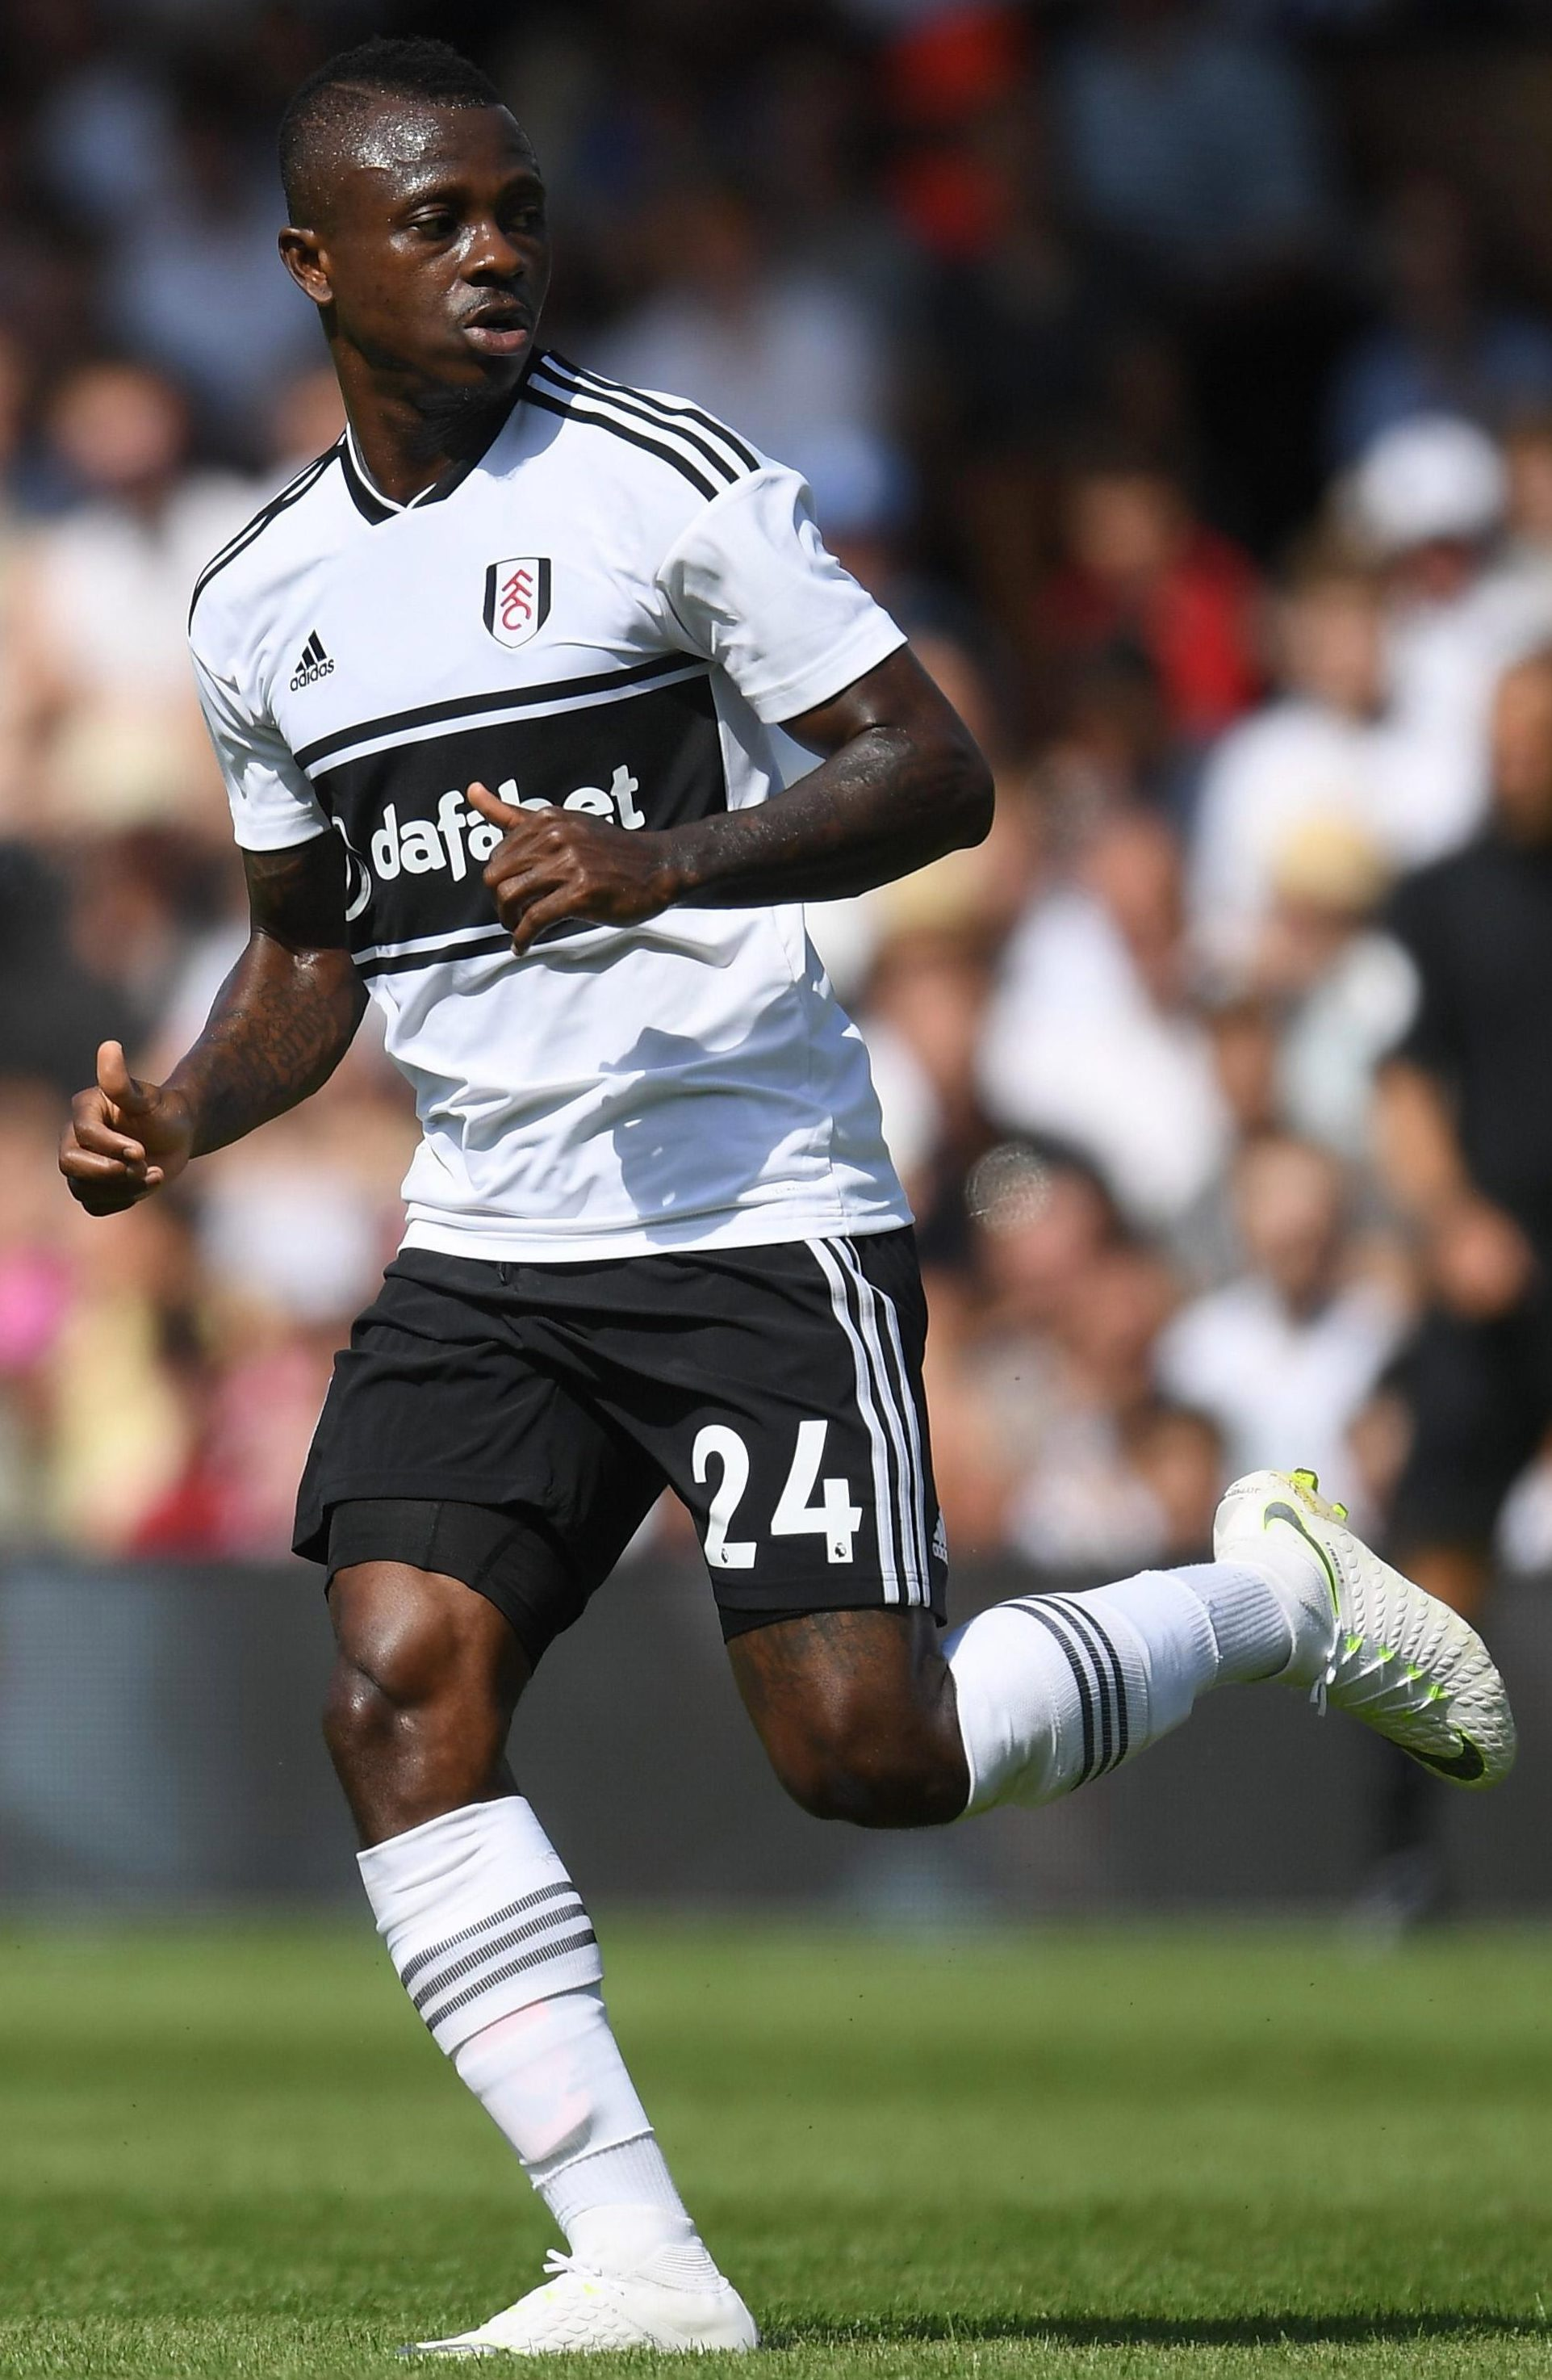 Jean Michael Seri starred for Fulham in the 2-0 loss to Palace